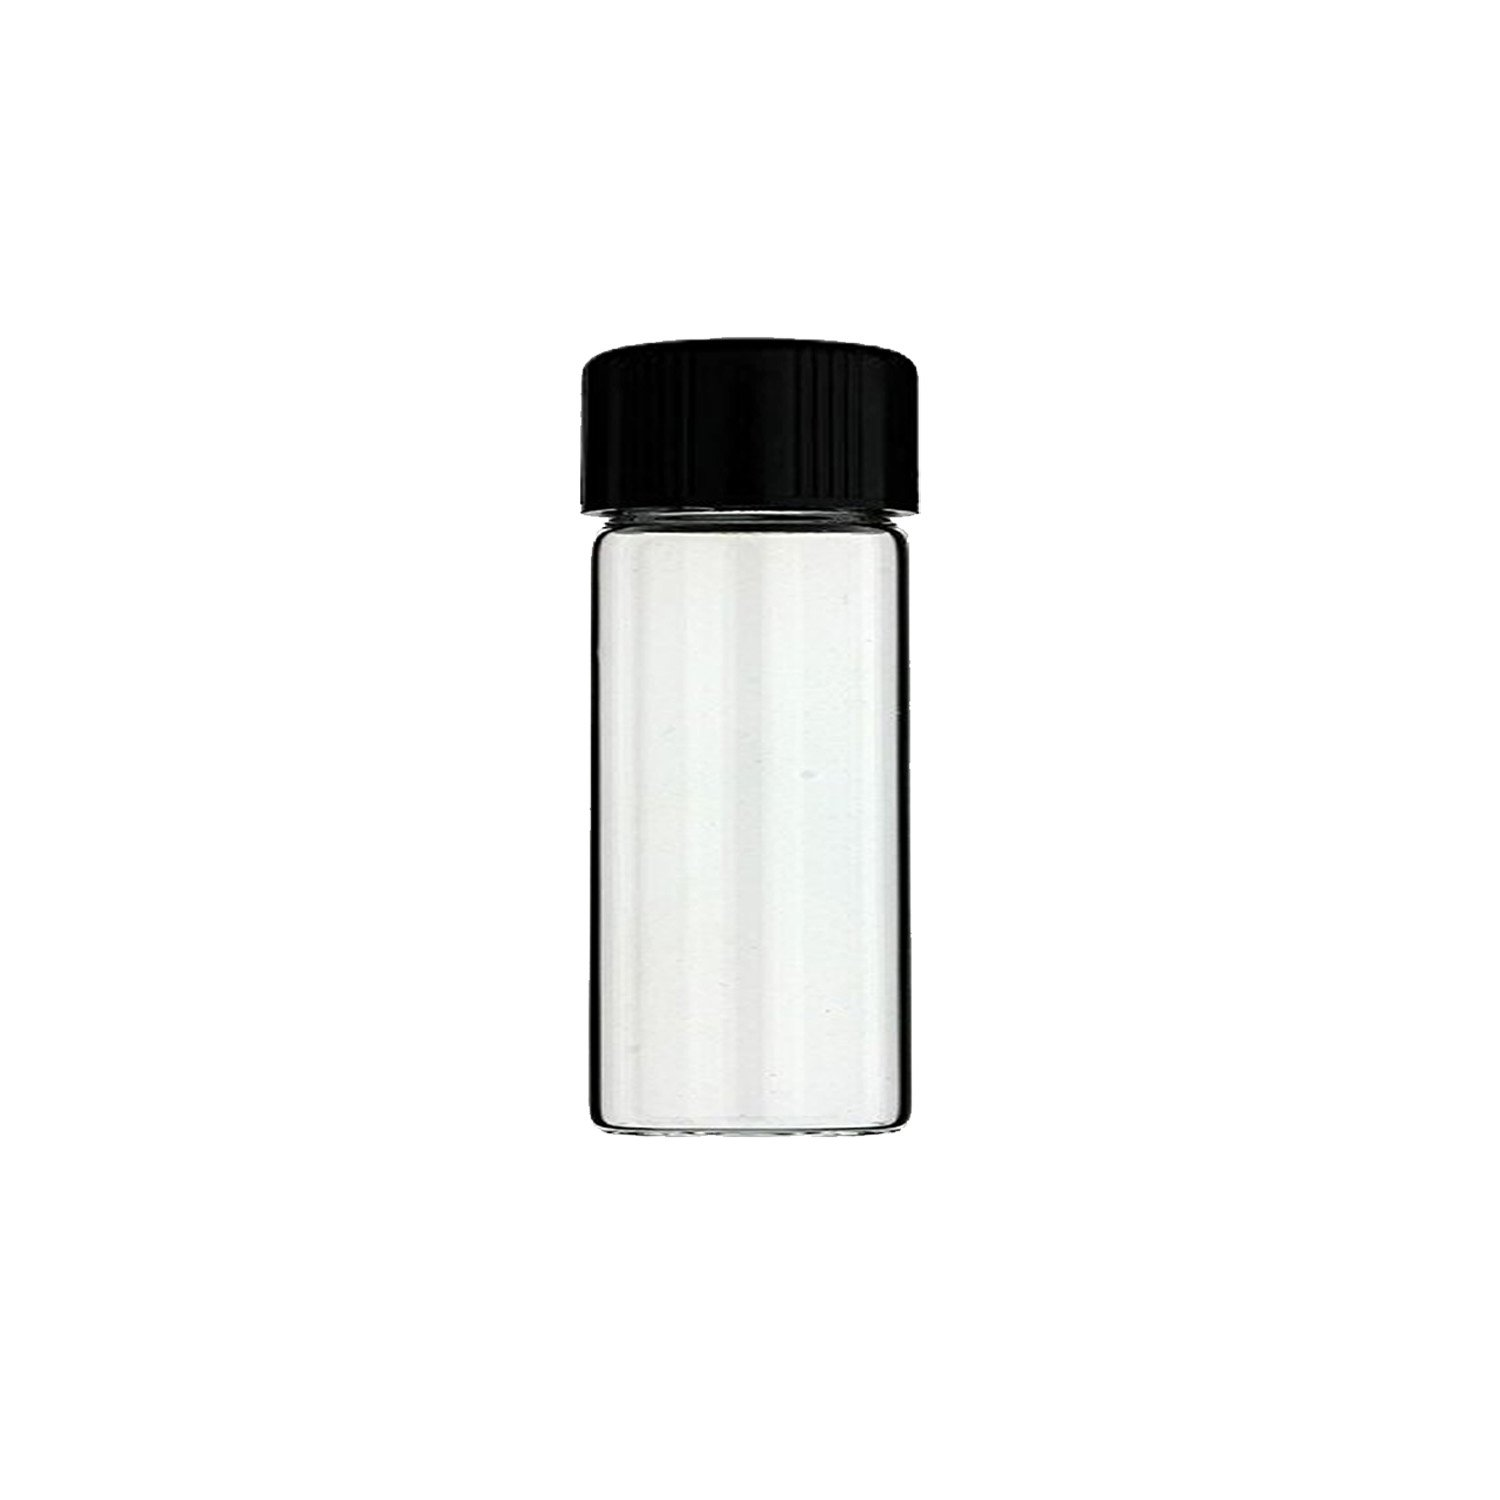 12PCS 3 inches 30 mL Clear Glass Bottles Storage Container Sample Cosmetic Herb Spice Specimen Vials with Black Phenolic Screw on Caps Pomcat